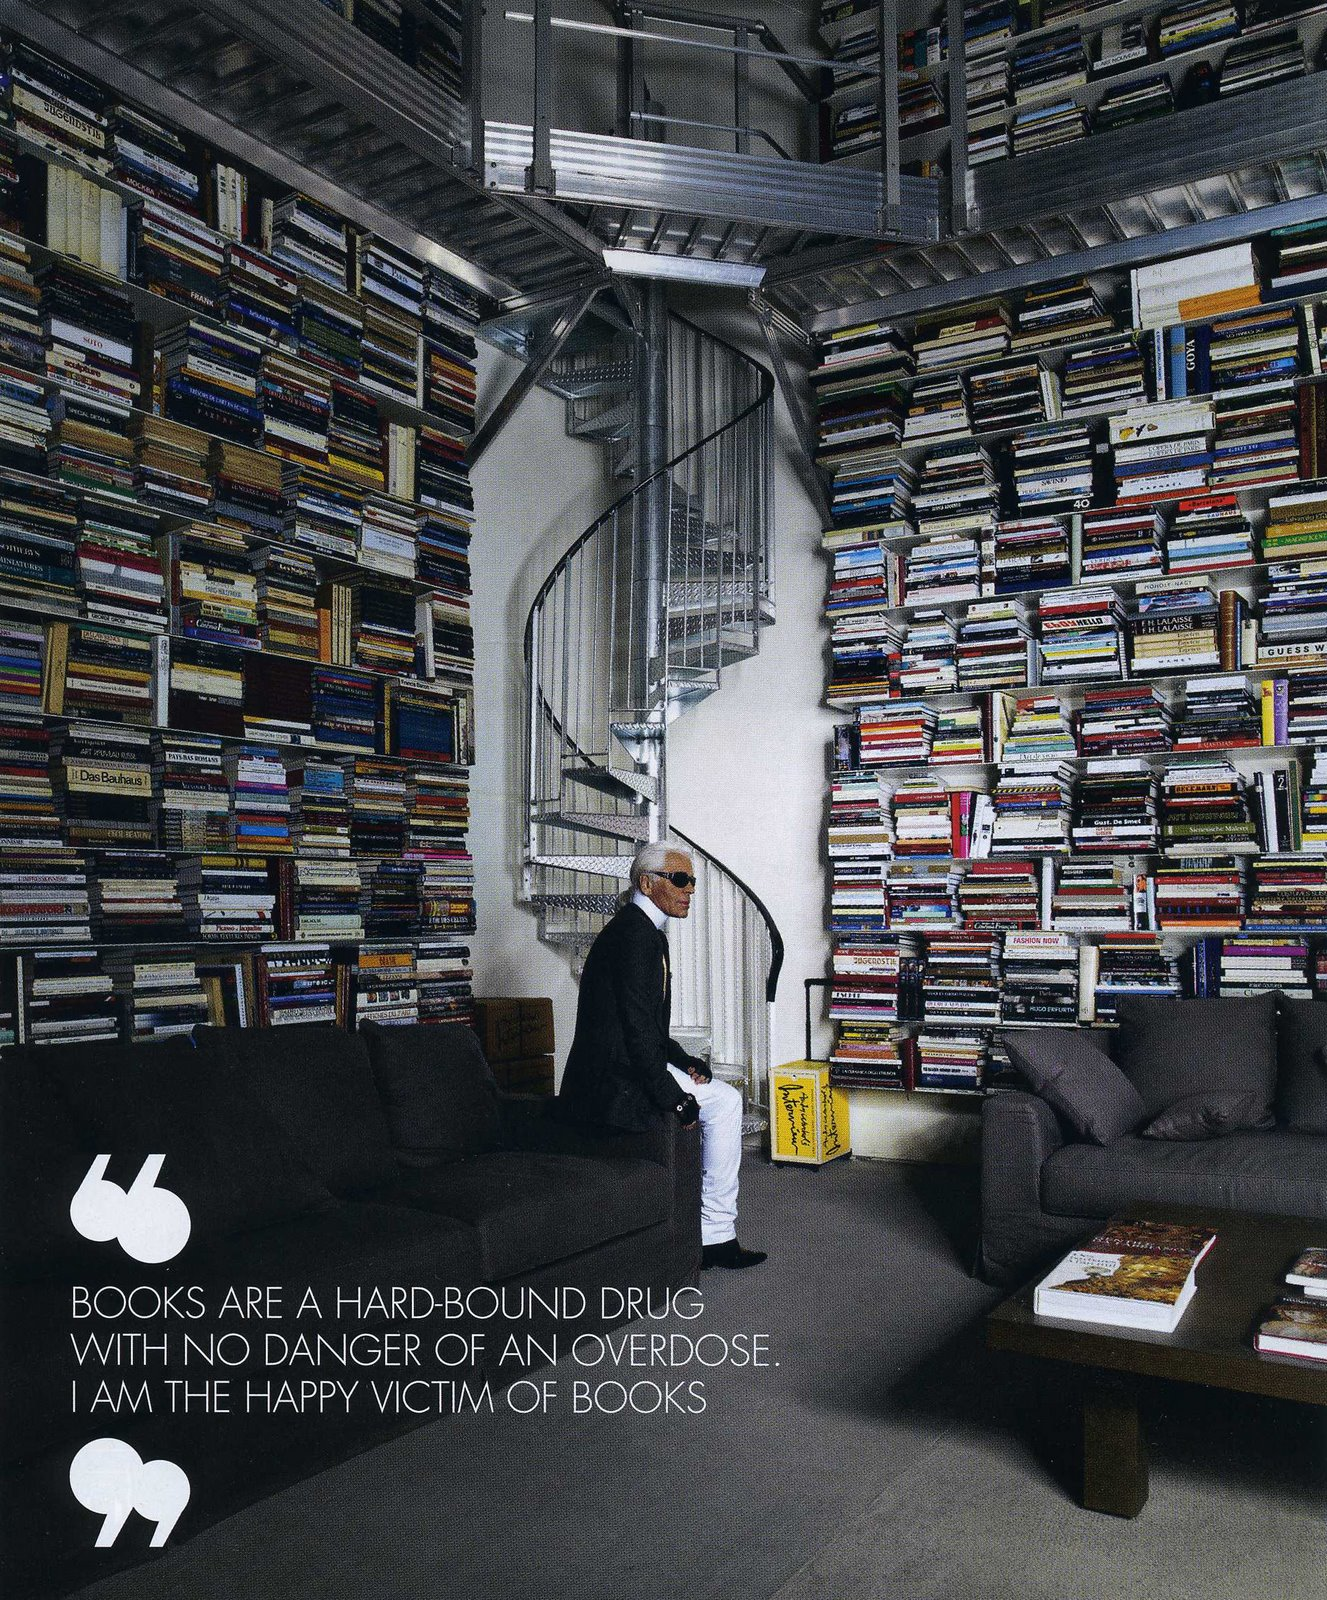 Karl's library. Thanks NHM for passing this on.